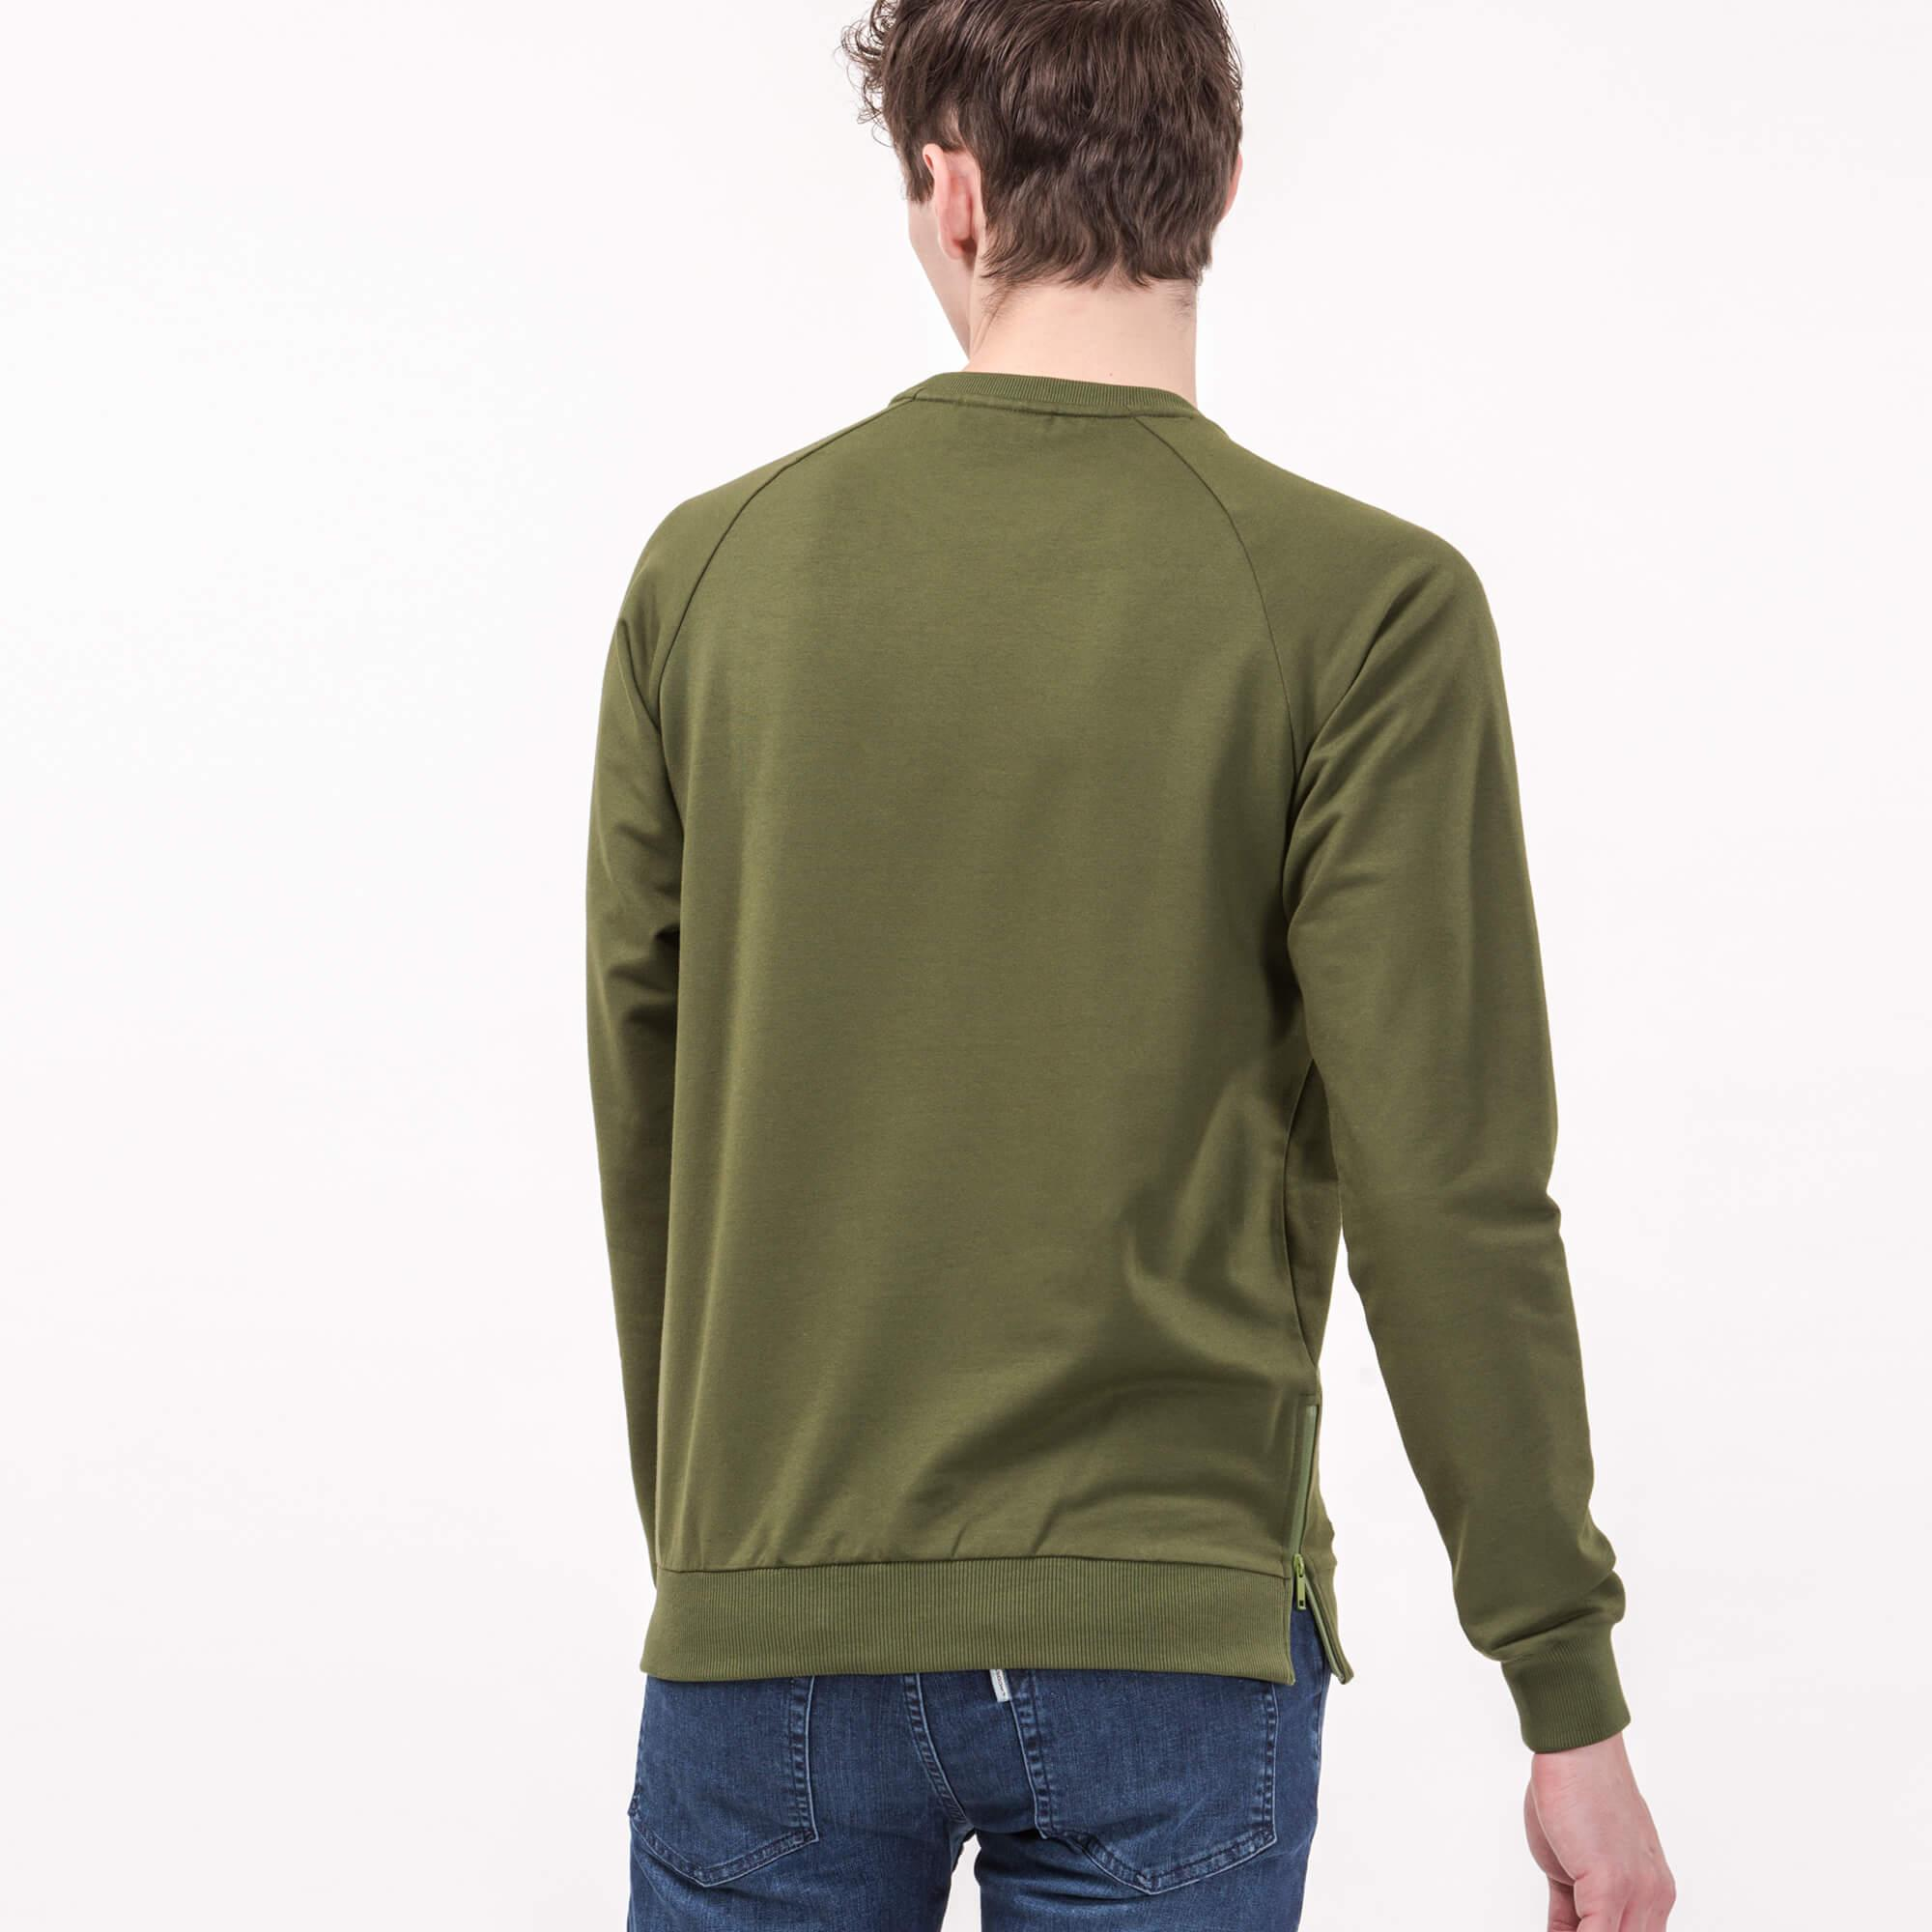 Lacoste Men's Sweatshirts